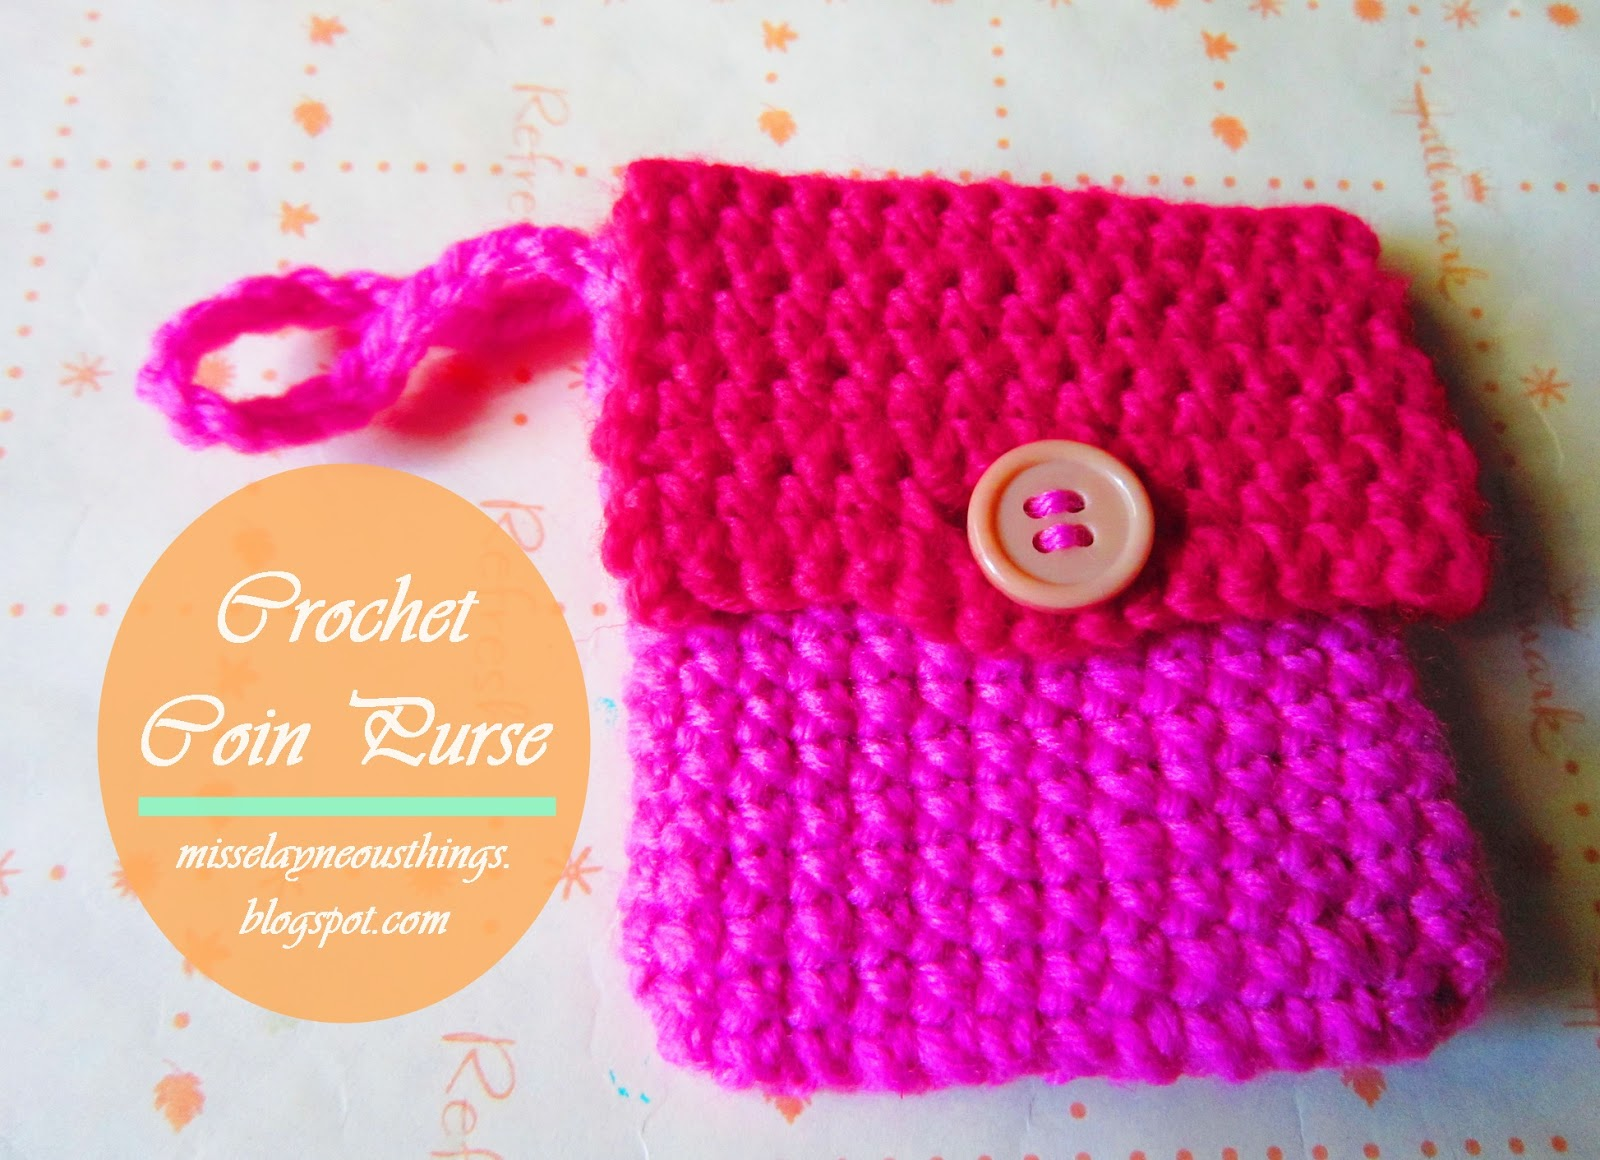 Im a proud crafter: Free Crochet Coin Purse pattern